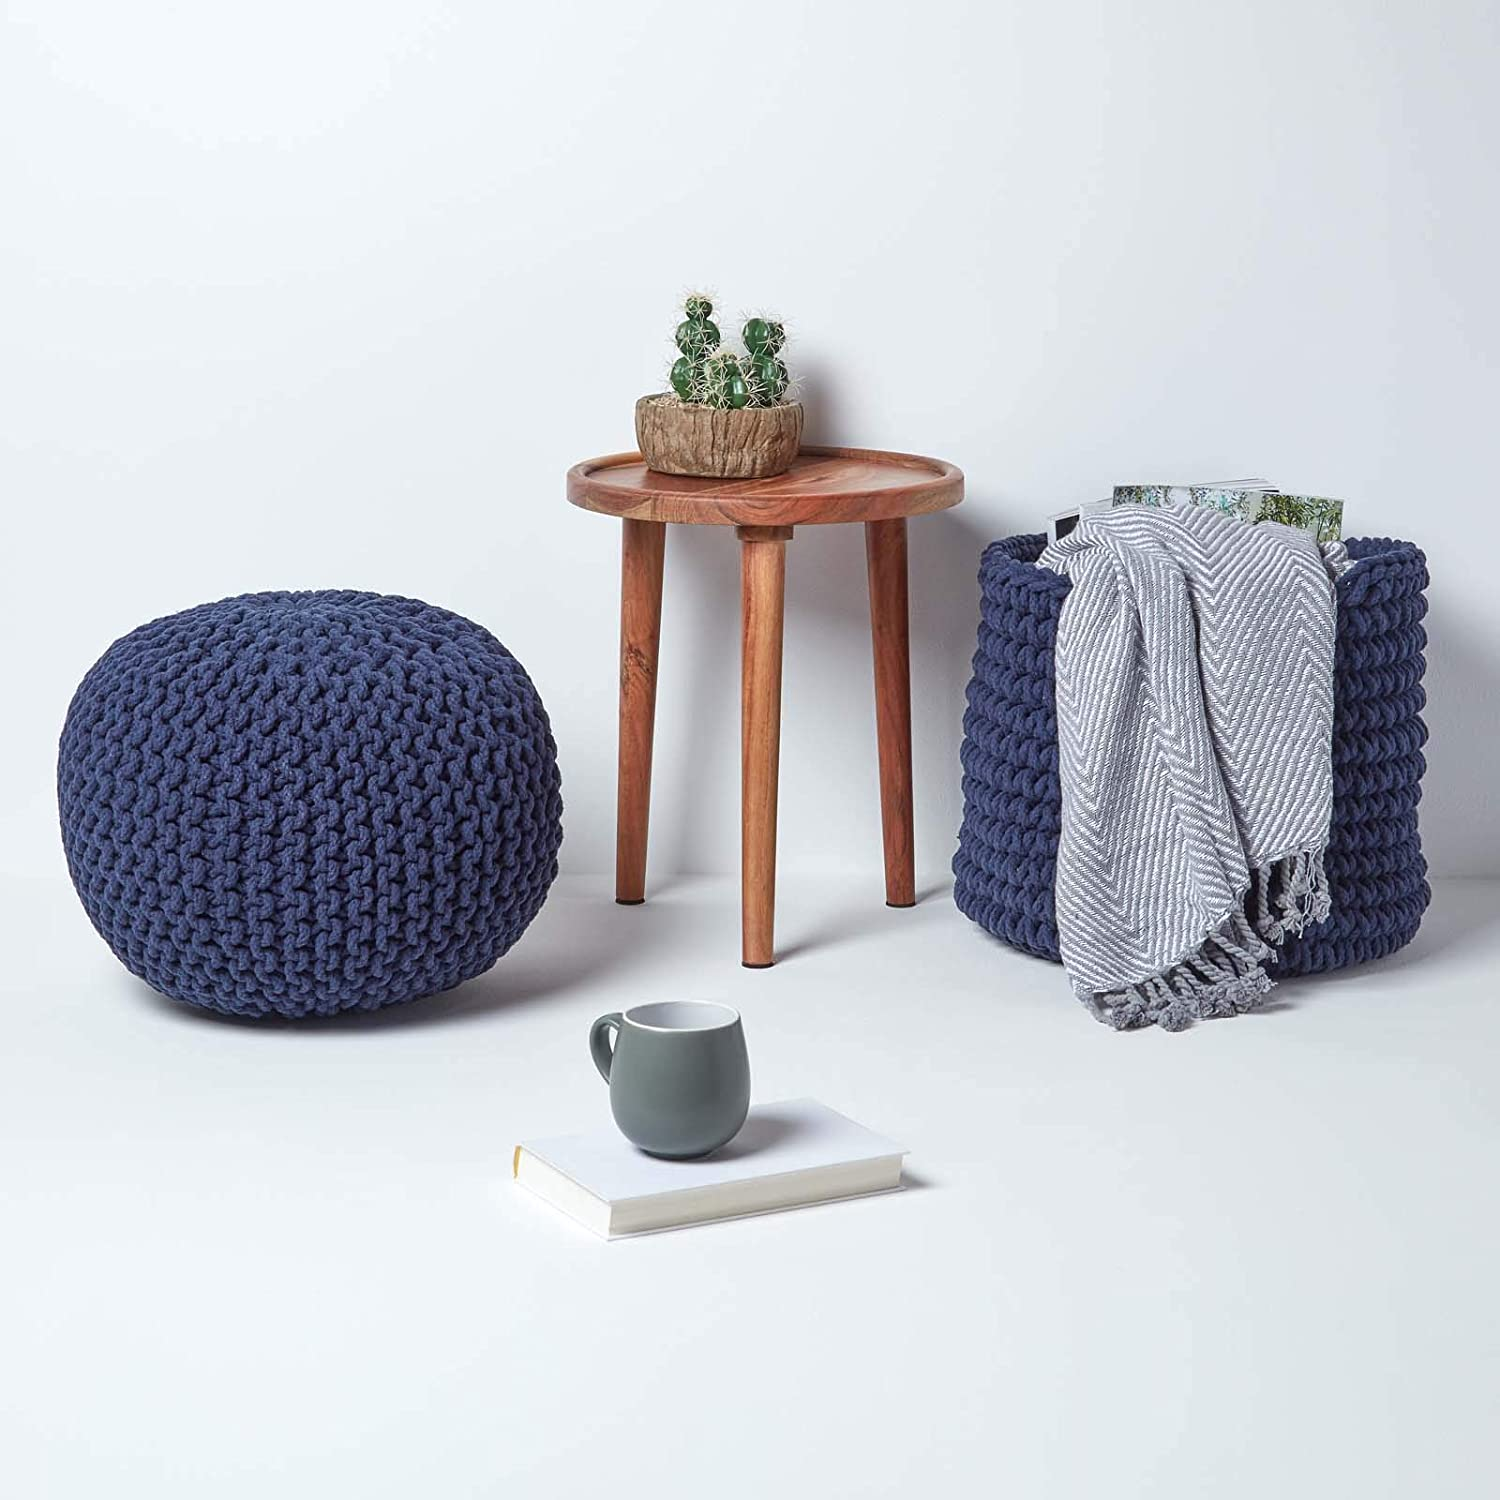 Homescapes Mustard Knitted Pouffe Footstool Bean Filled 100% Cotton for Living Room Children or the Elderly… Navy Blue